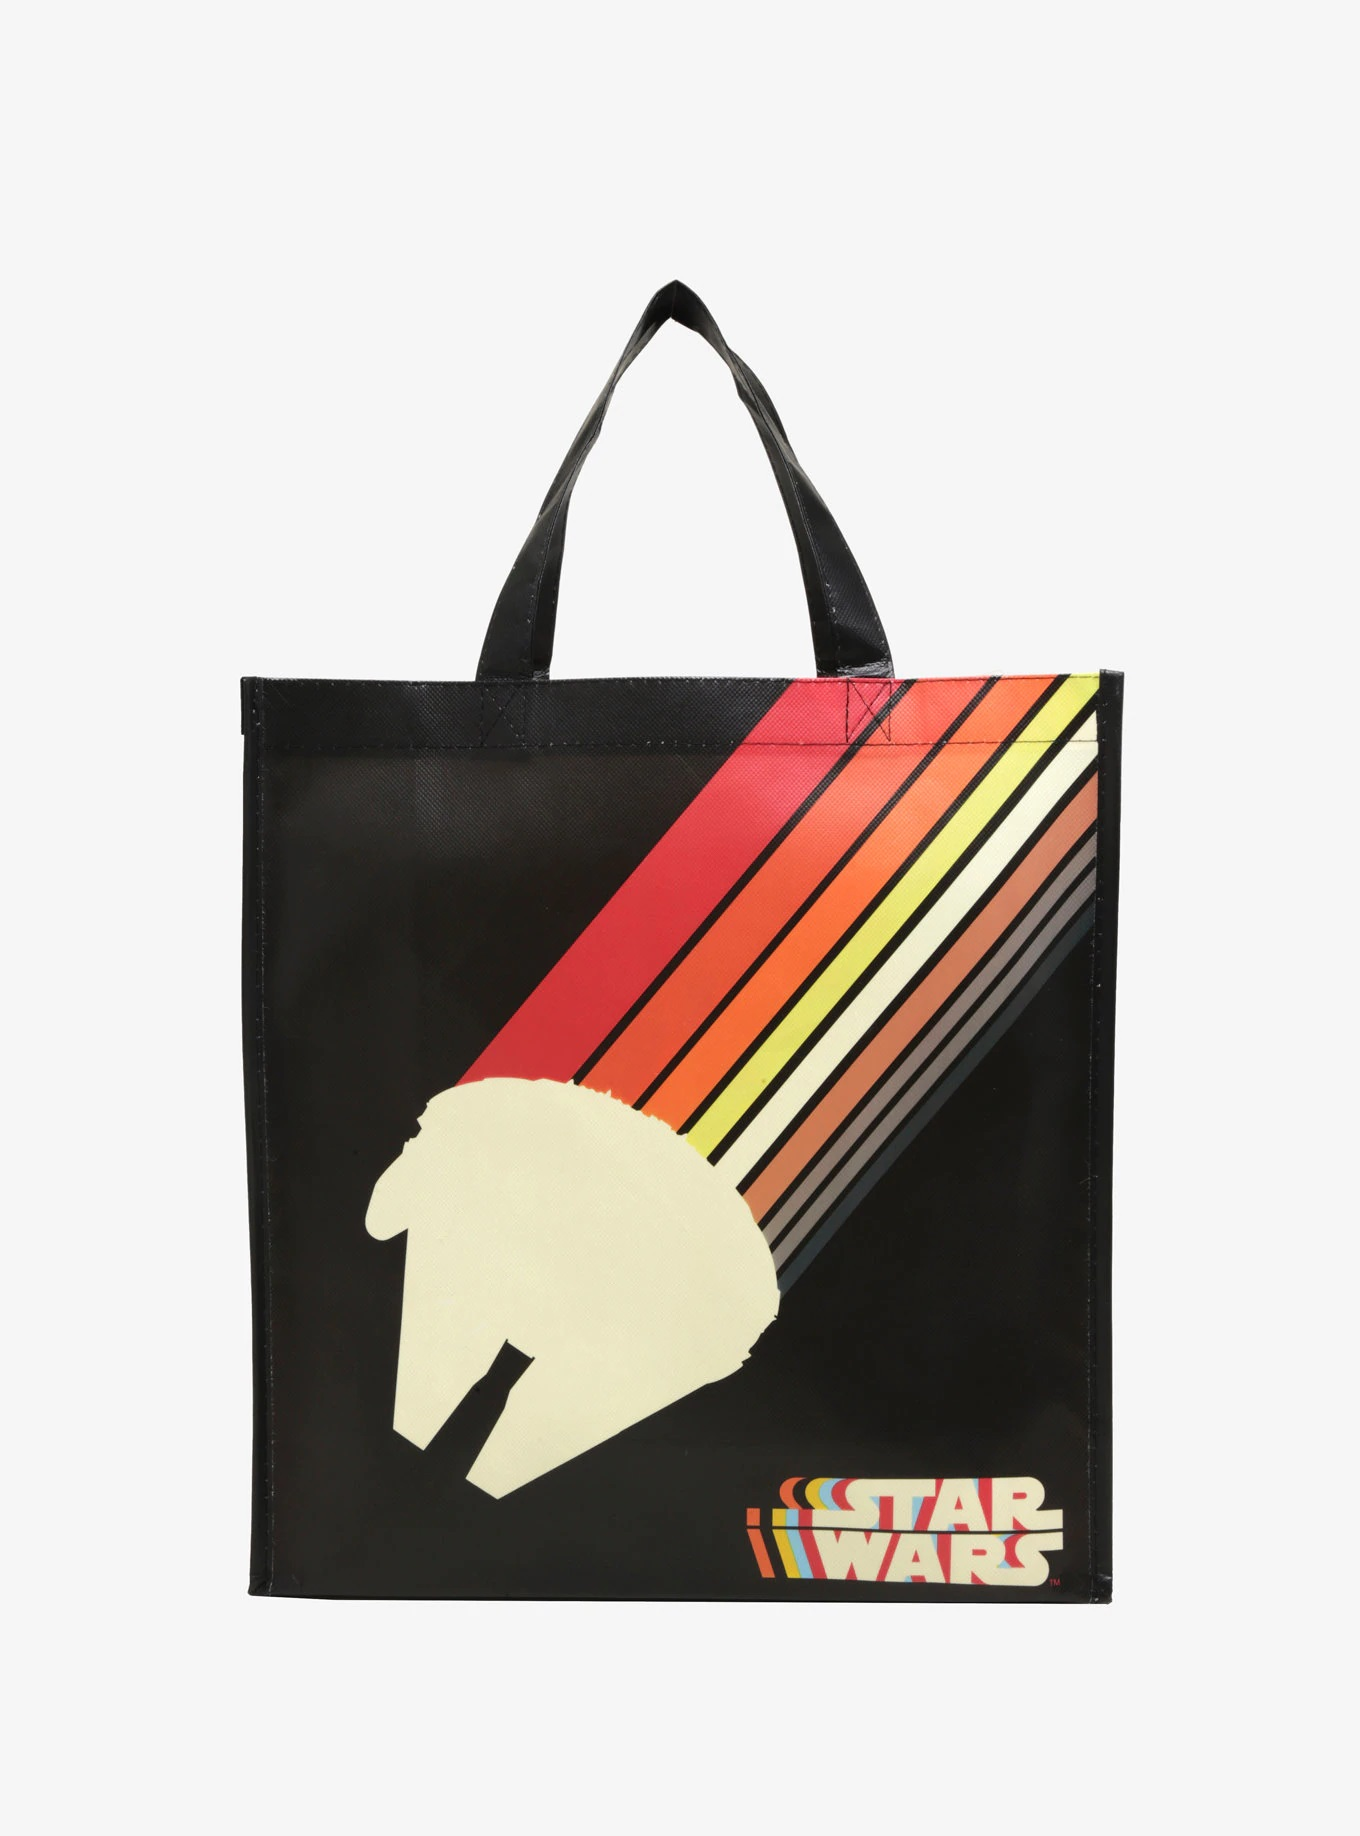 Star Wars Millennium Falcon Reusable Tote Bag Available Exclusively at Box Lunch